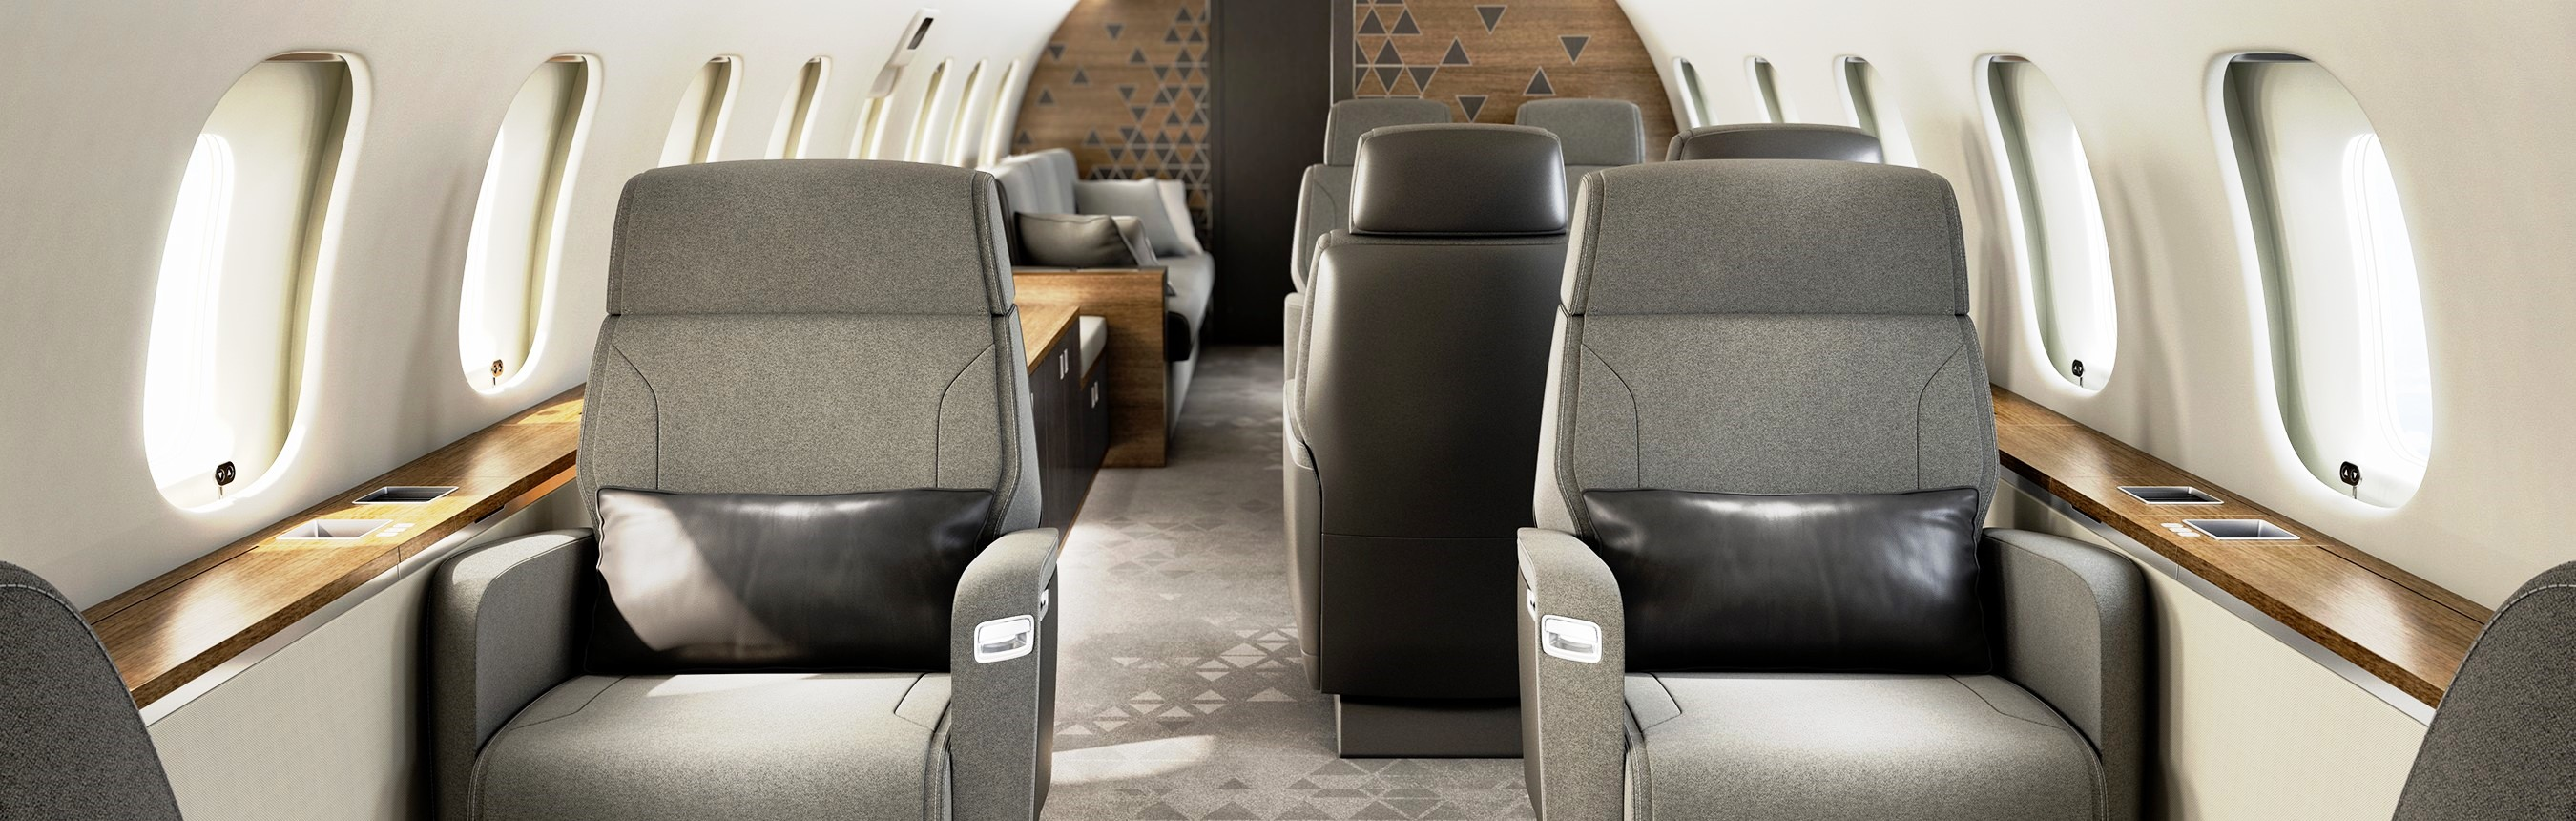 bombardier-global-5500-business-jet-interior